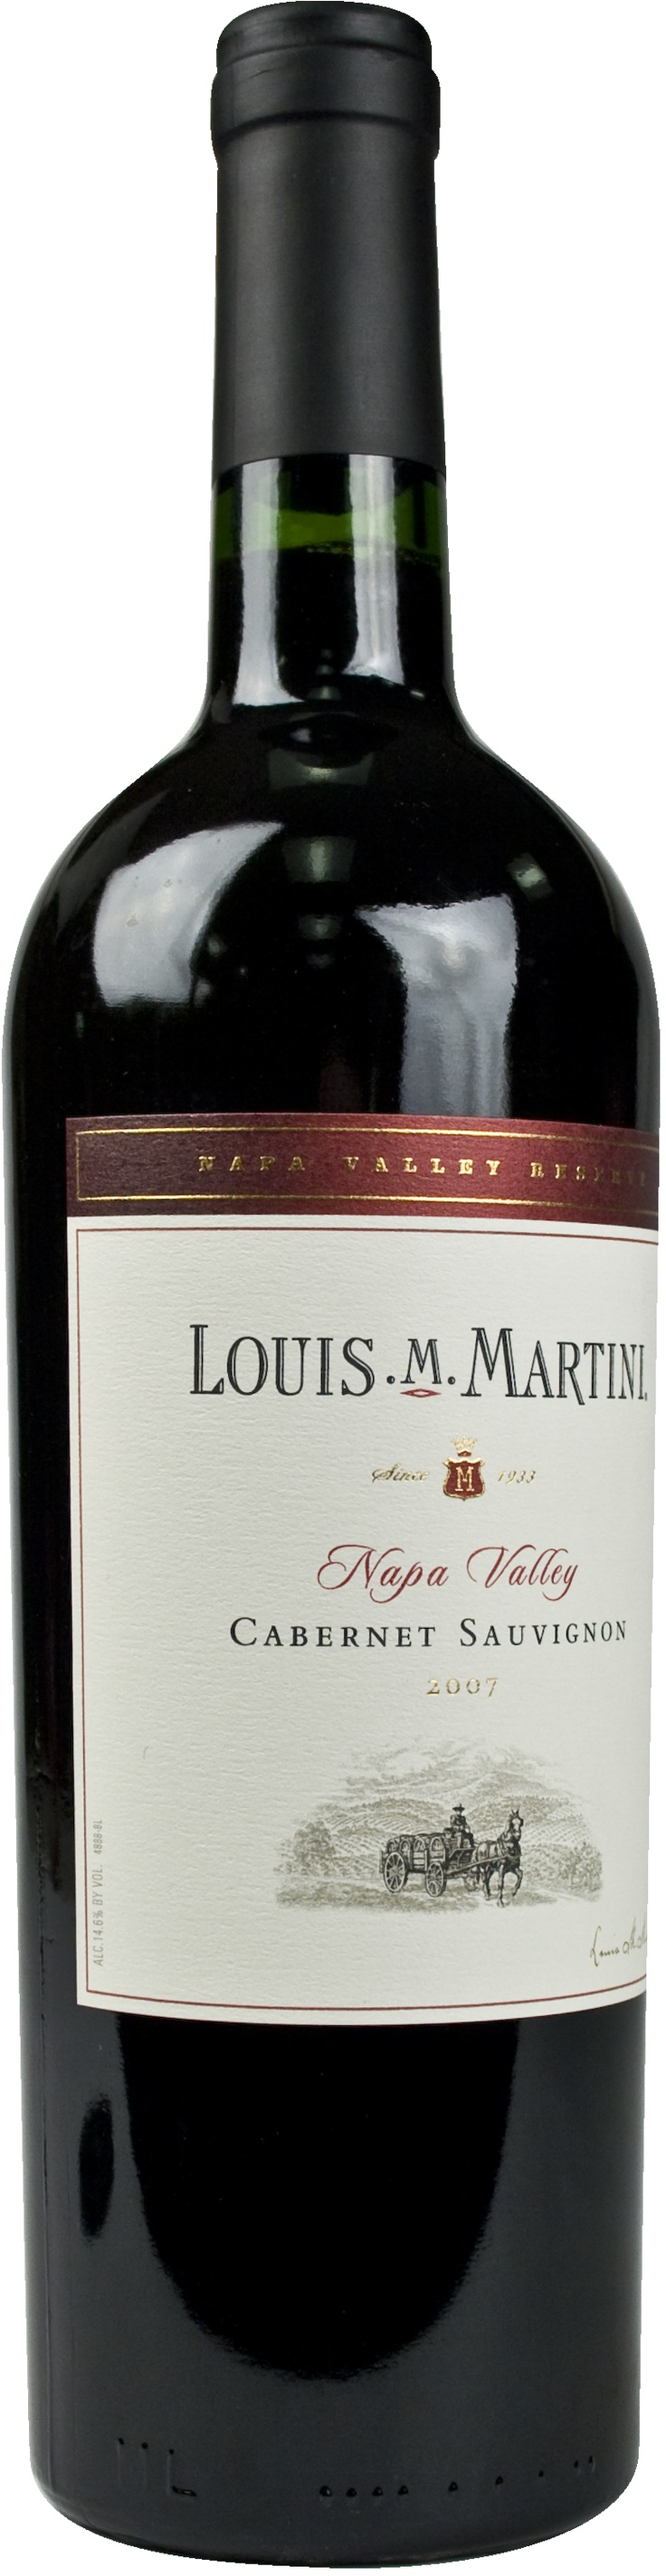 Louis Martini Cab from Napa valley. good stuff